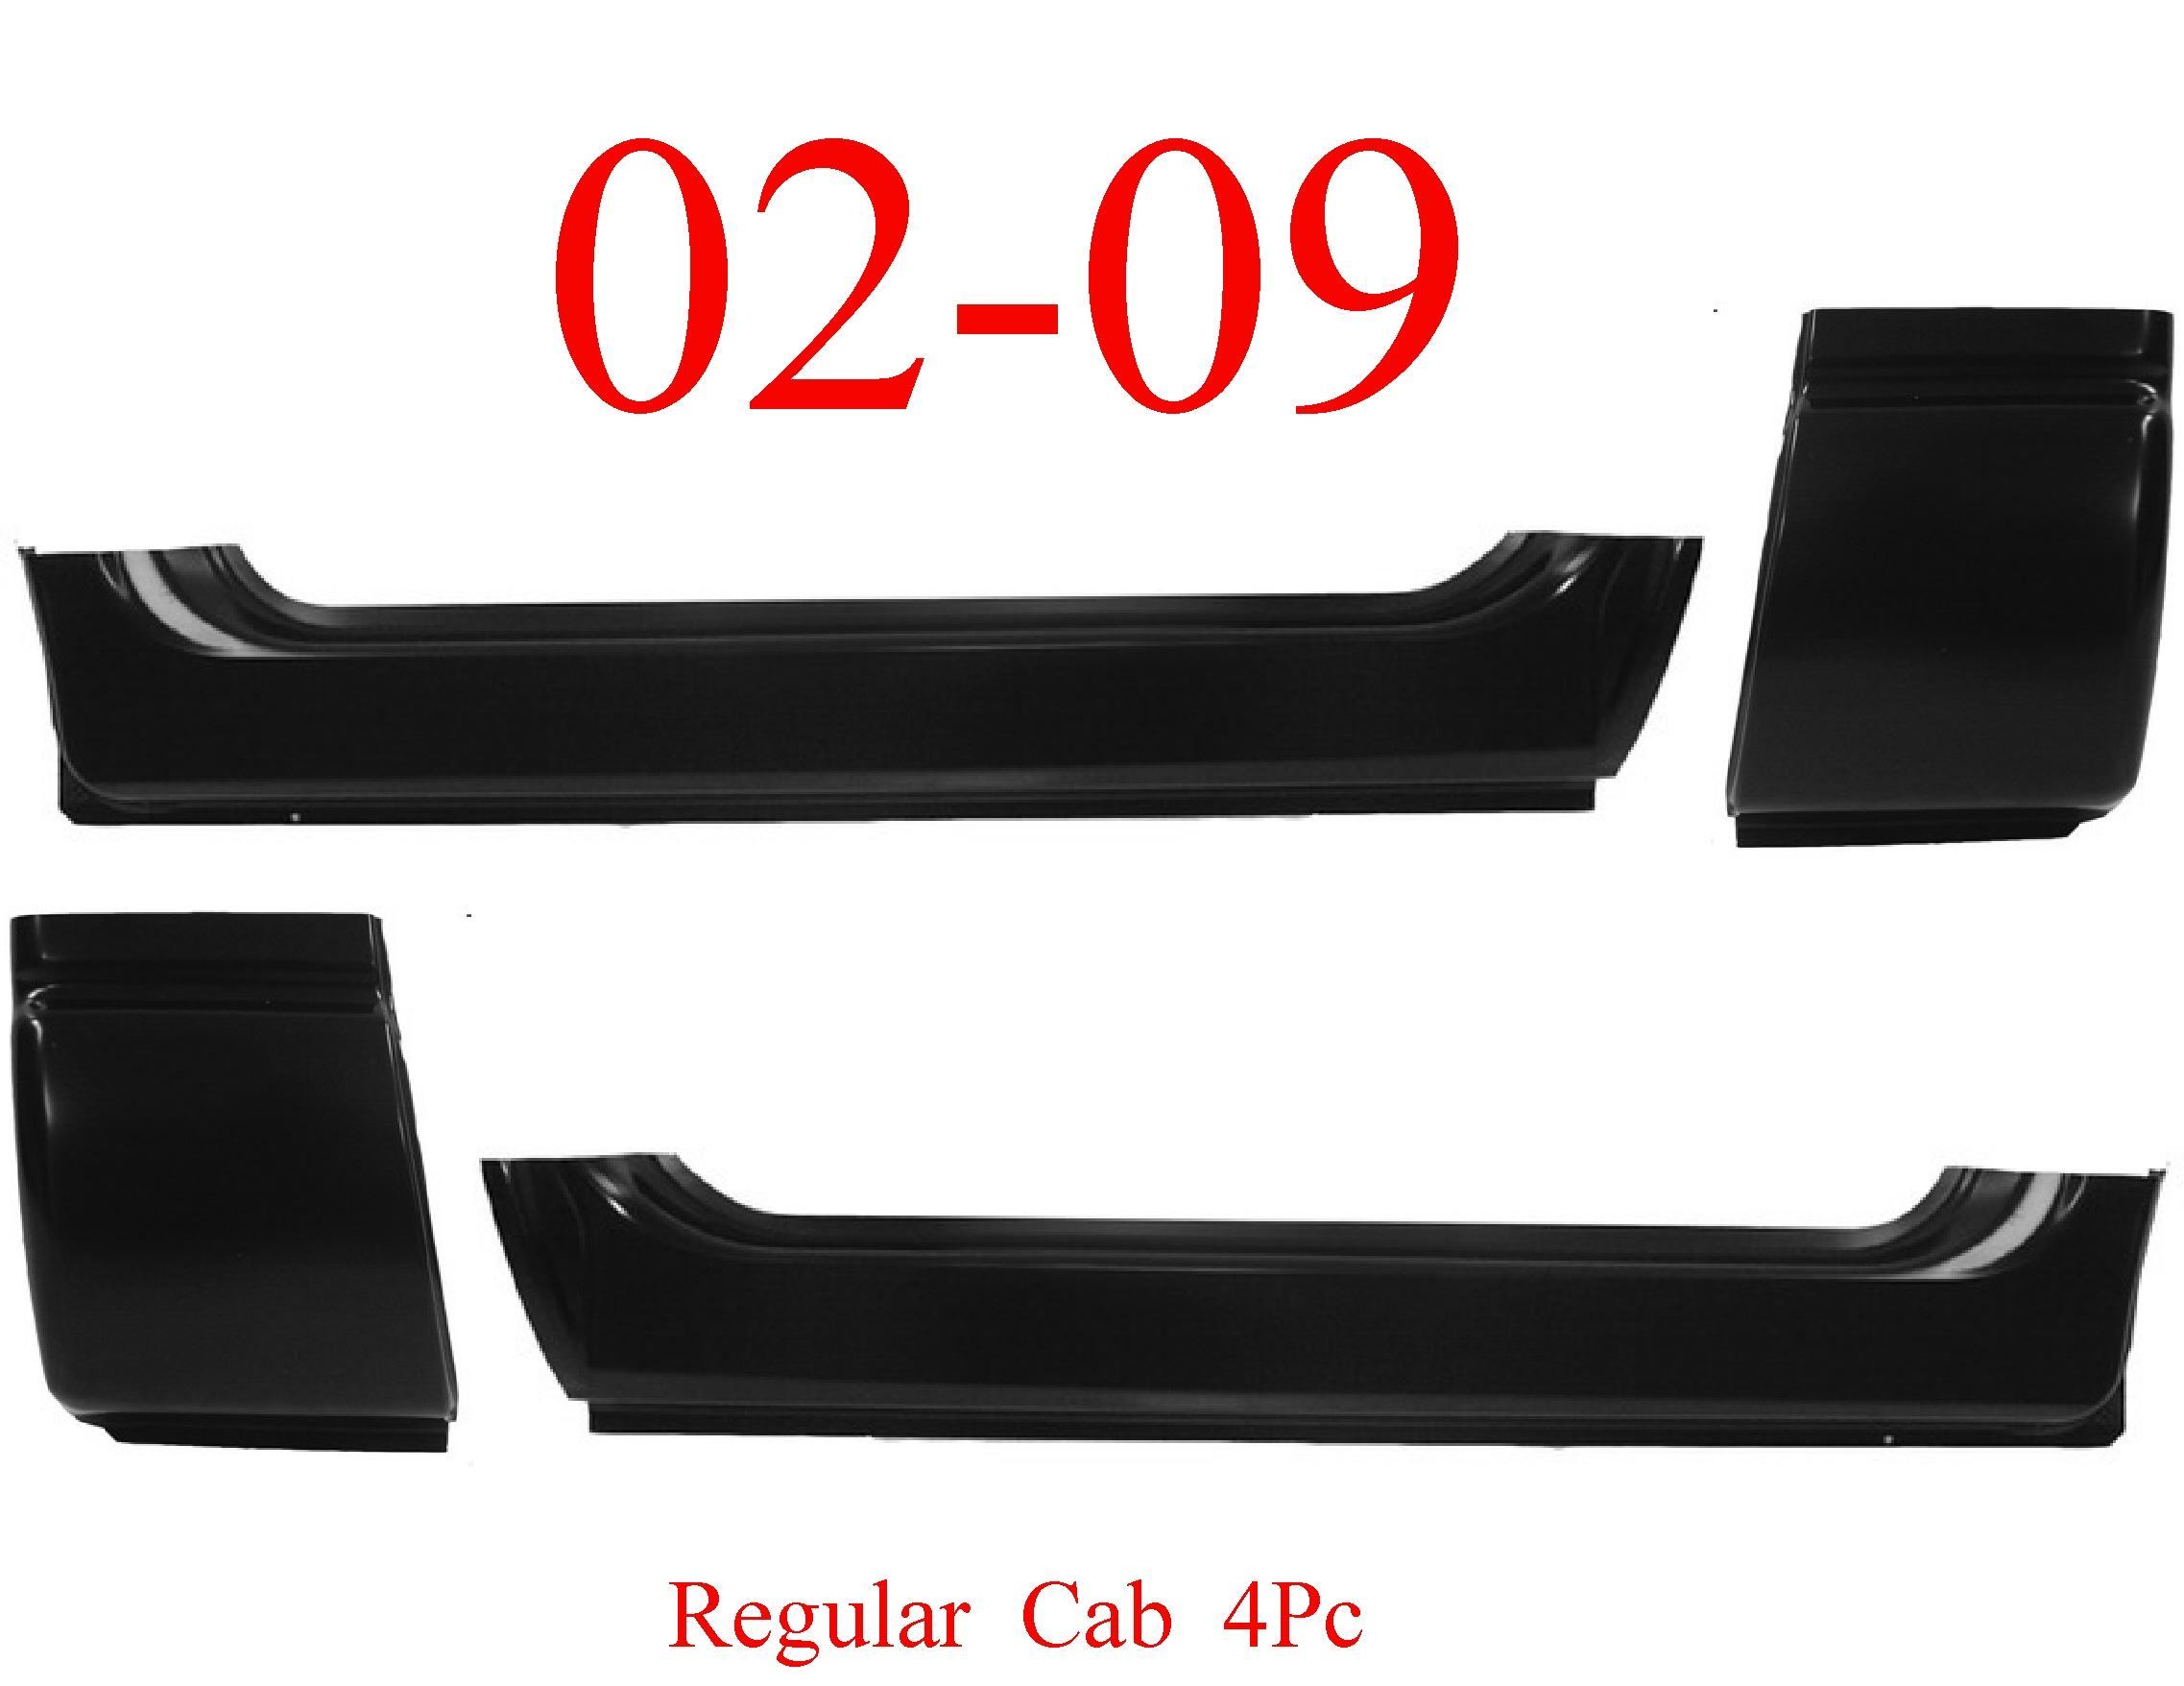 02-09 Dodge Ram 4Pc Extended Rocker & Cab Corner Set